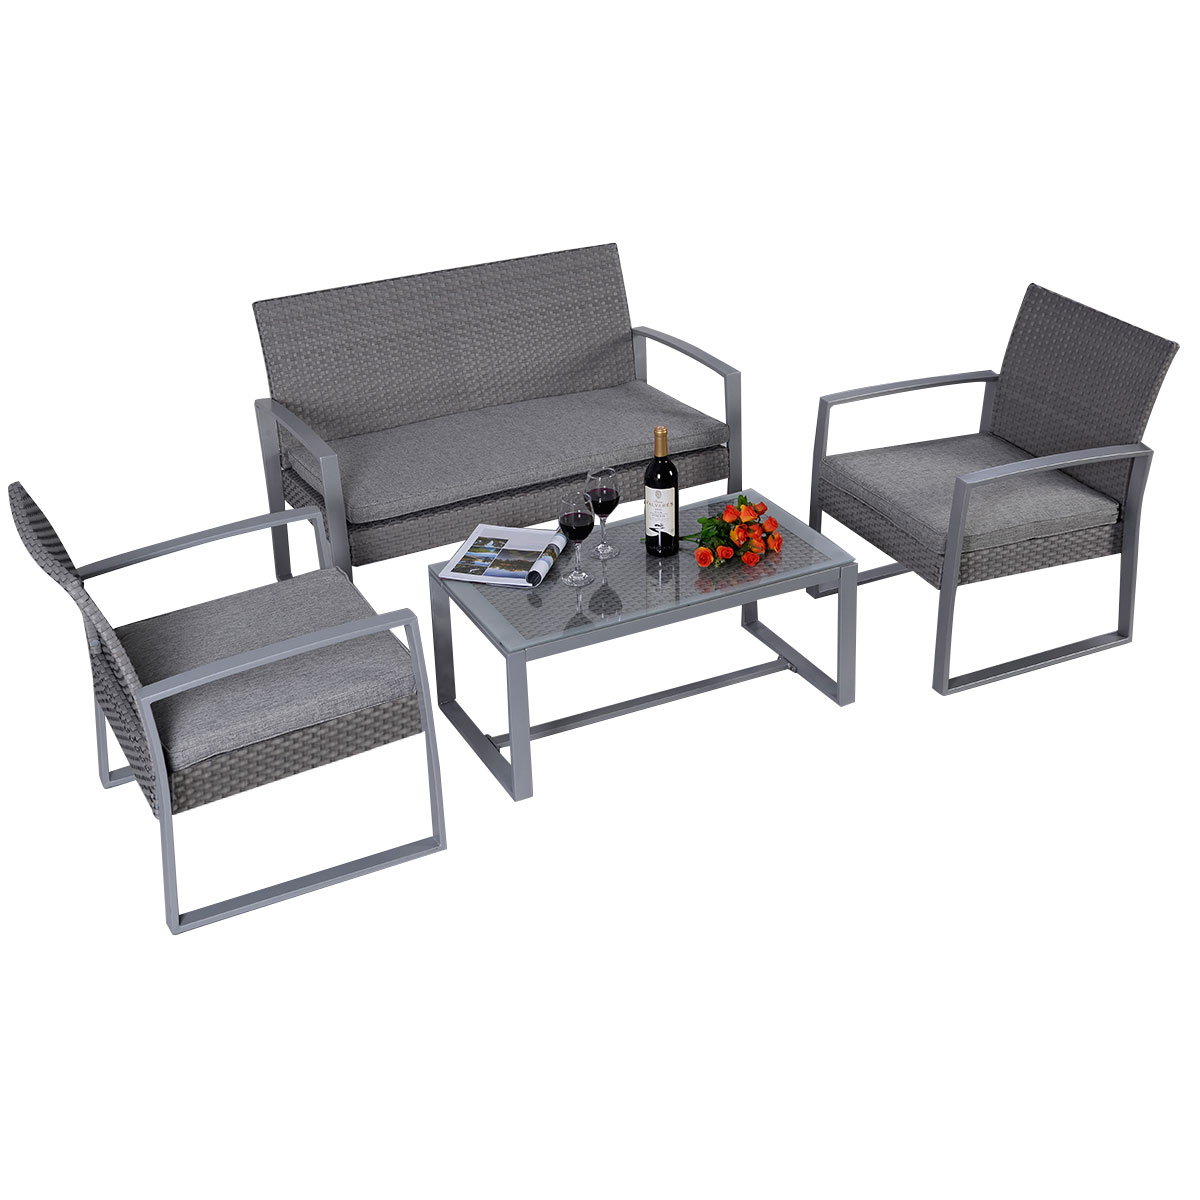 costway 4pc patio furniture set cushioned outdoor wicker rattan garden lawn sofa seat walmartcom